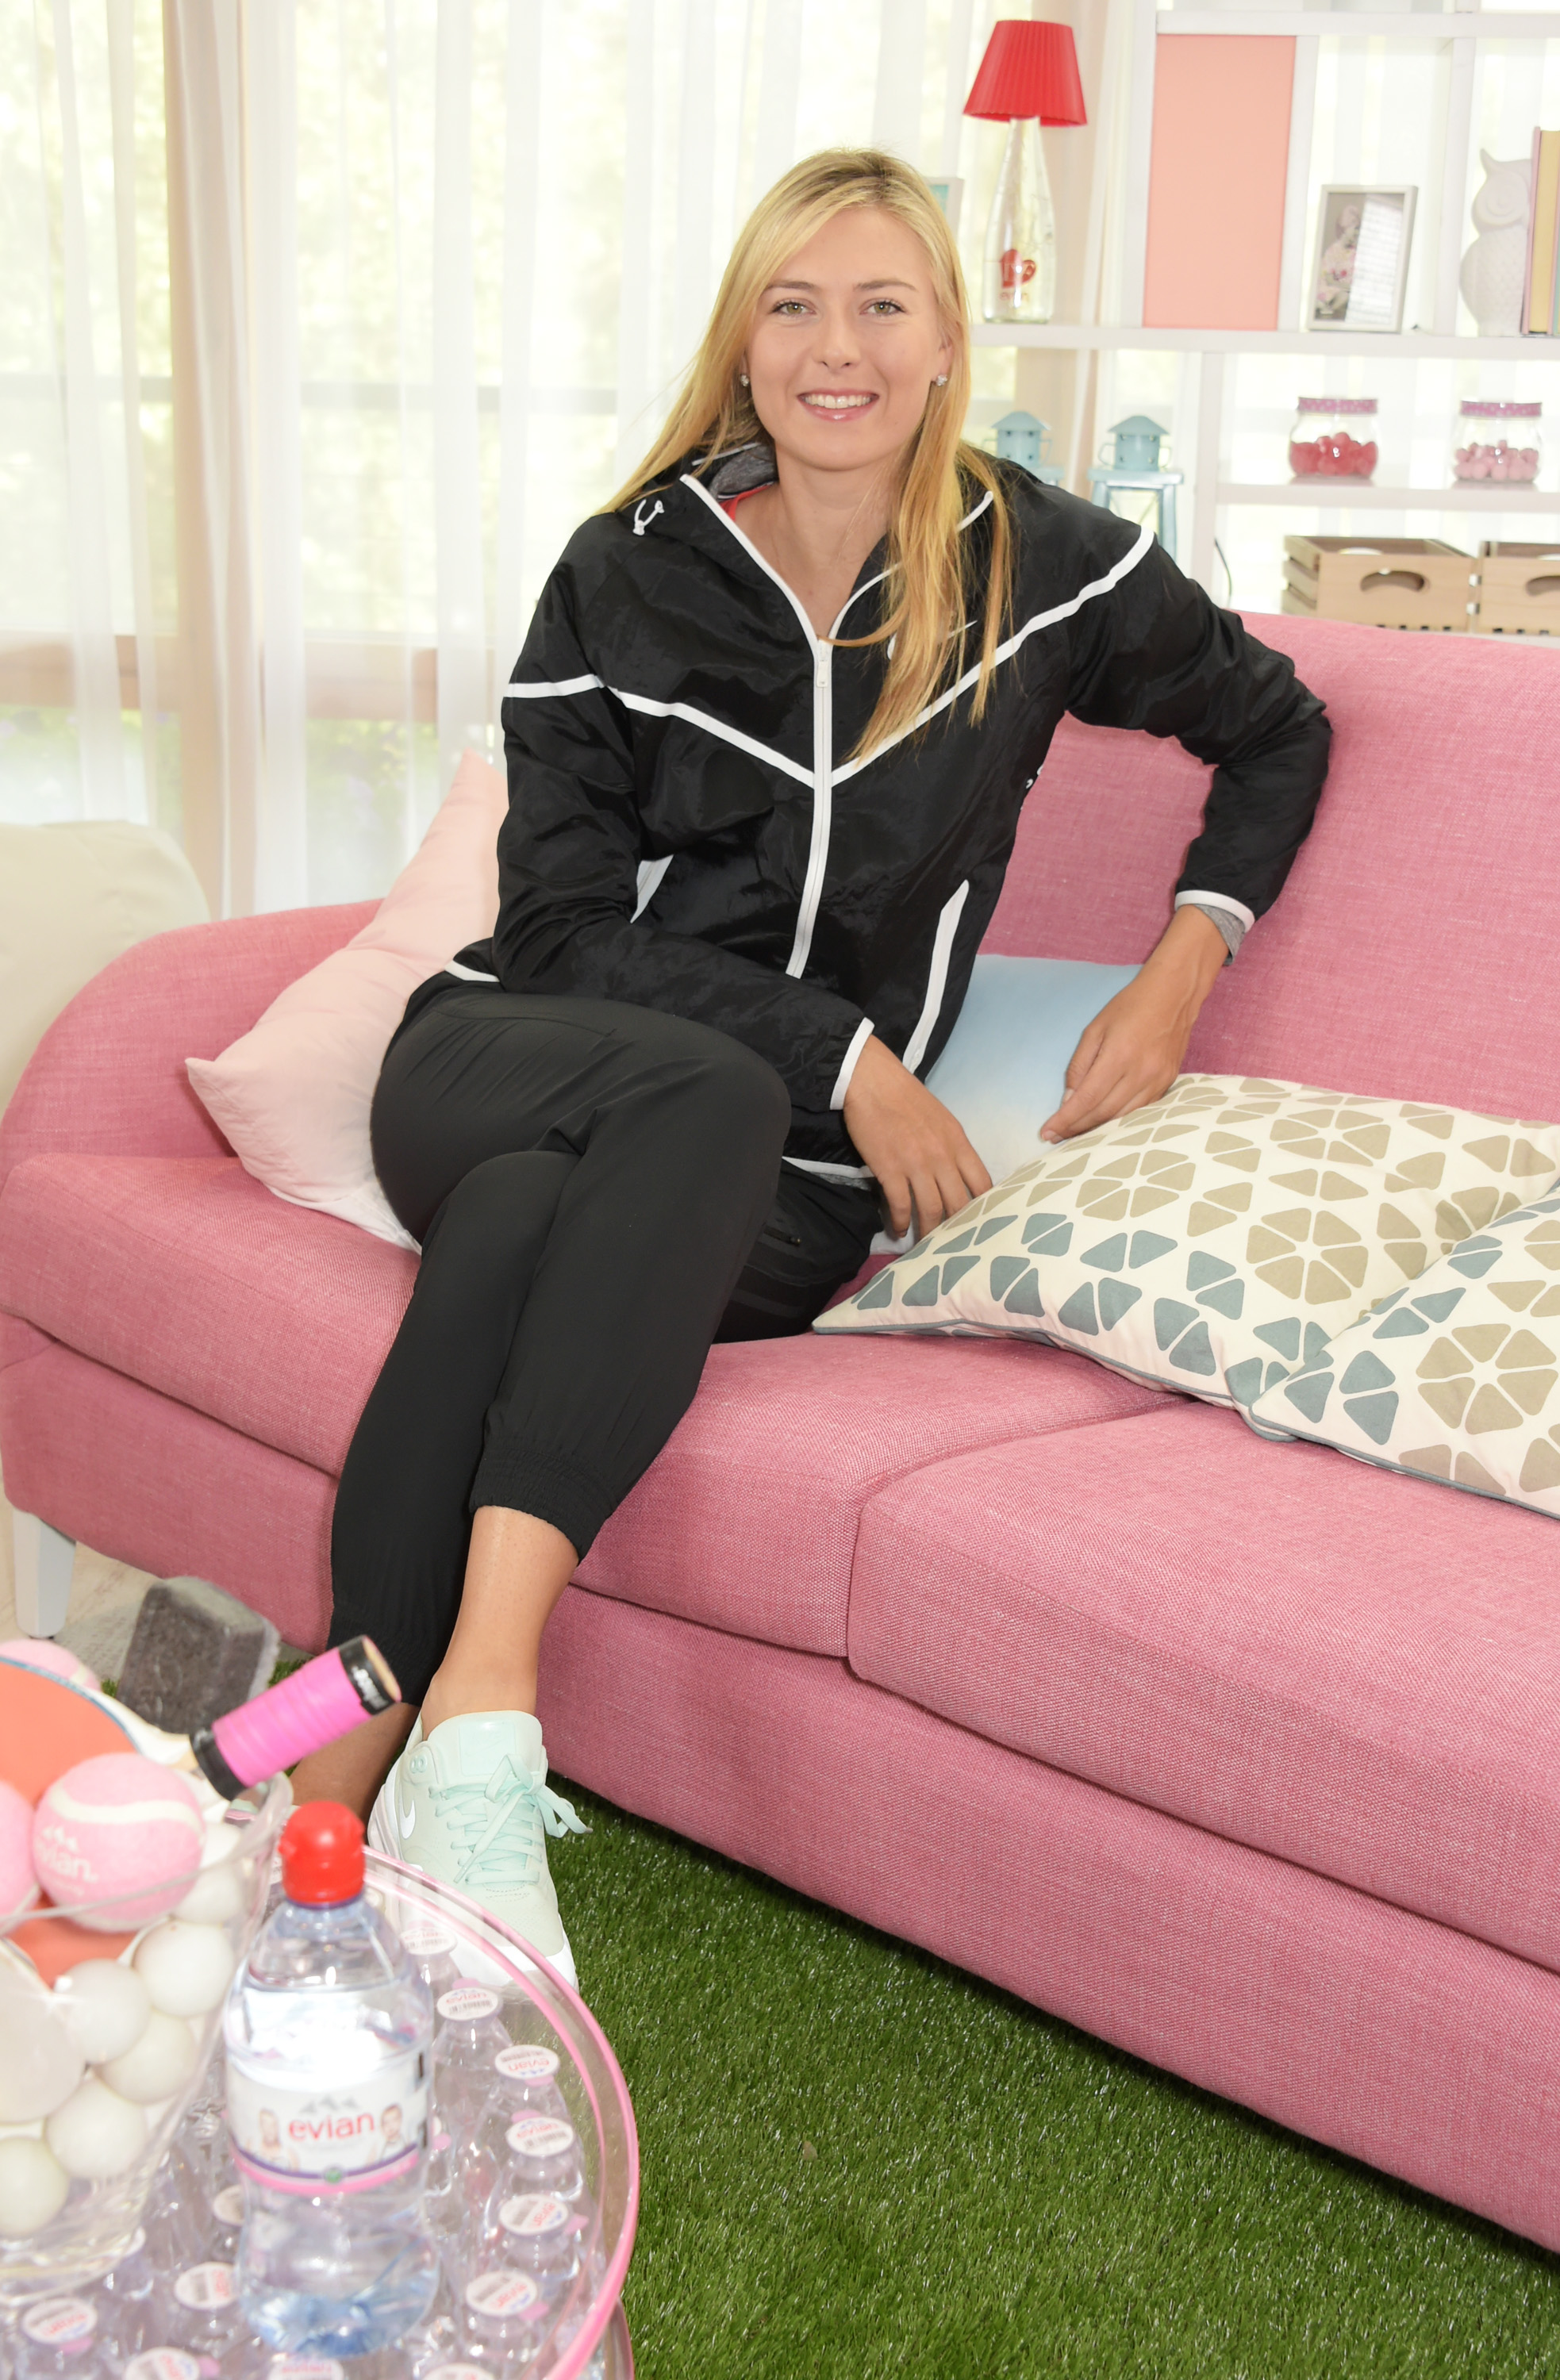 evian launches #wimblewatch with Maria Sharapova at Wimbledon on June 23, 2015 in London, England. Pic Credit: Dave Benett